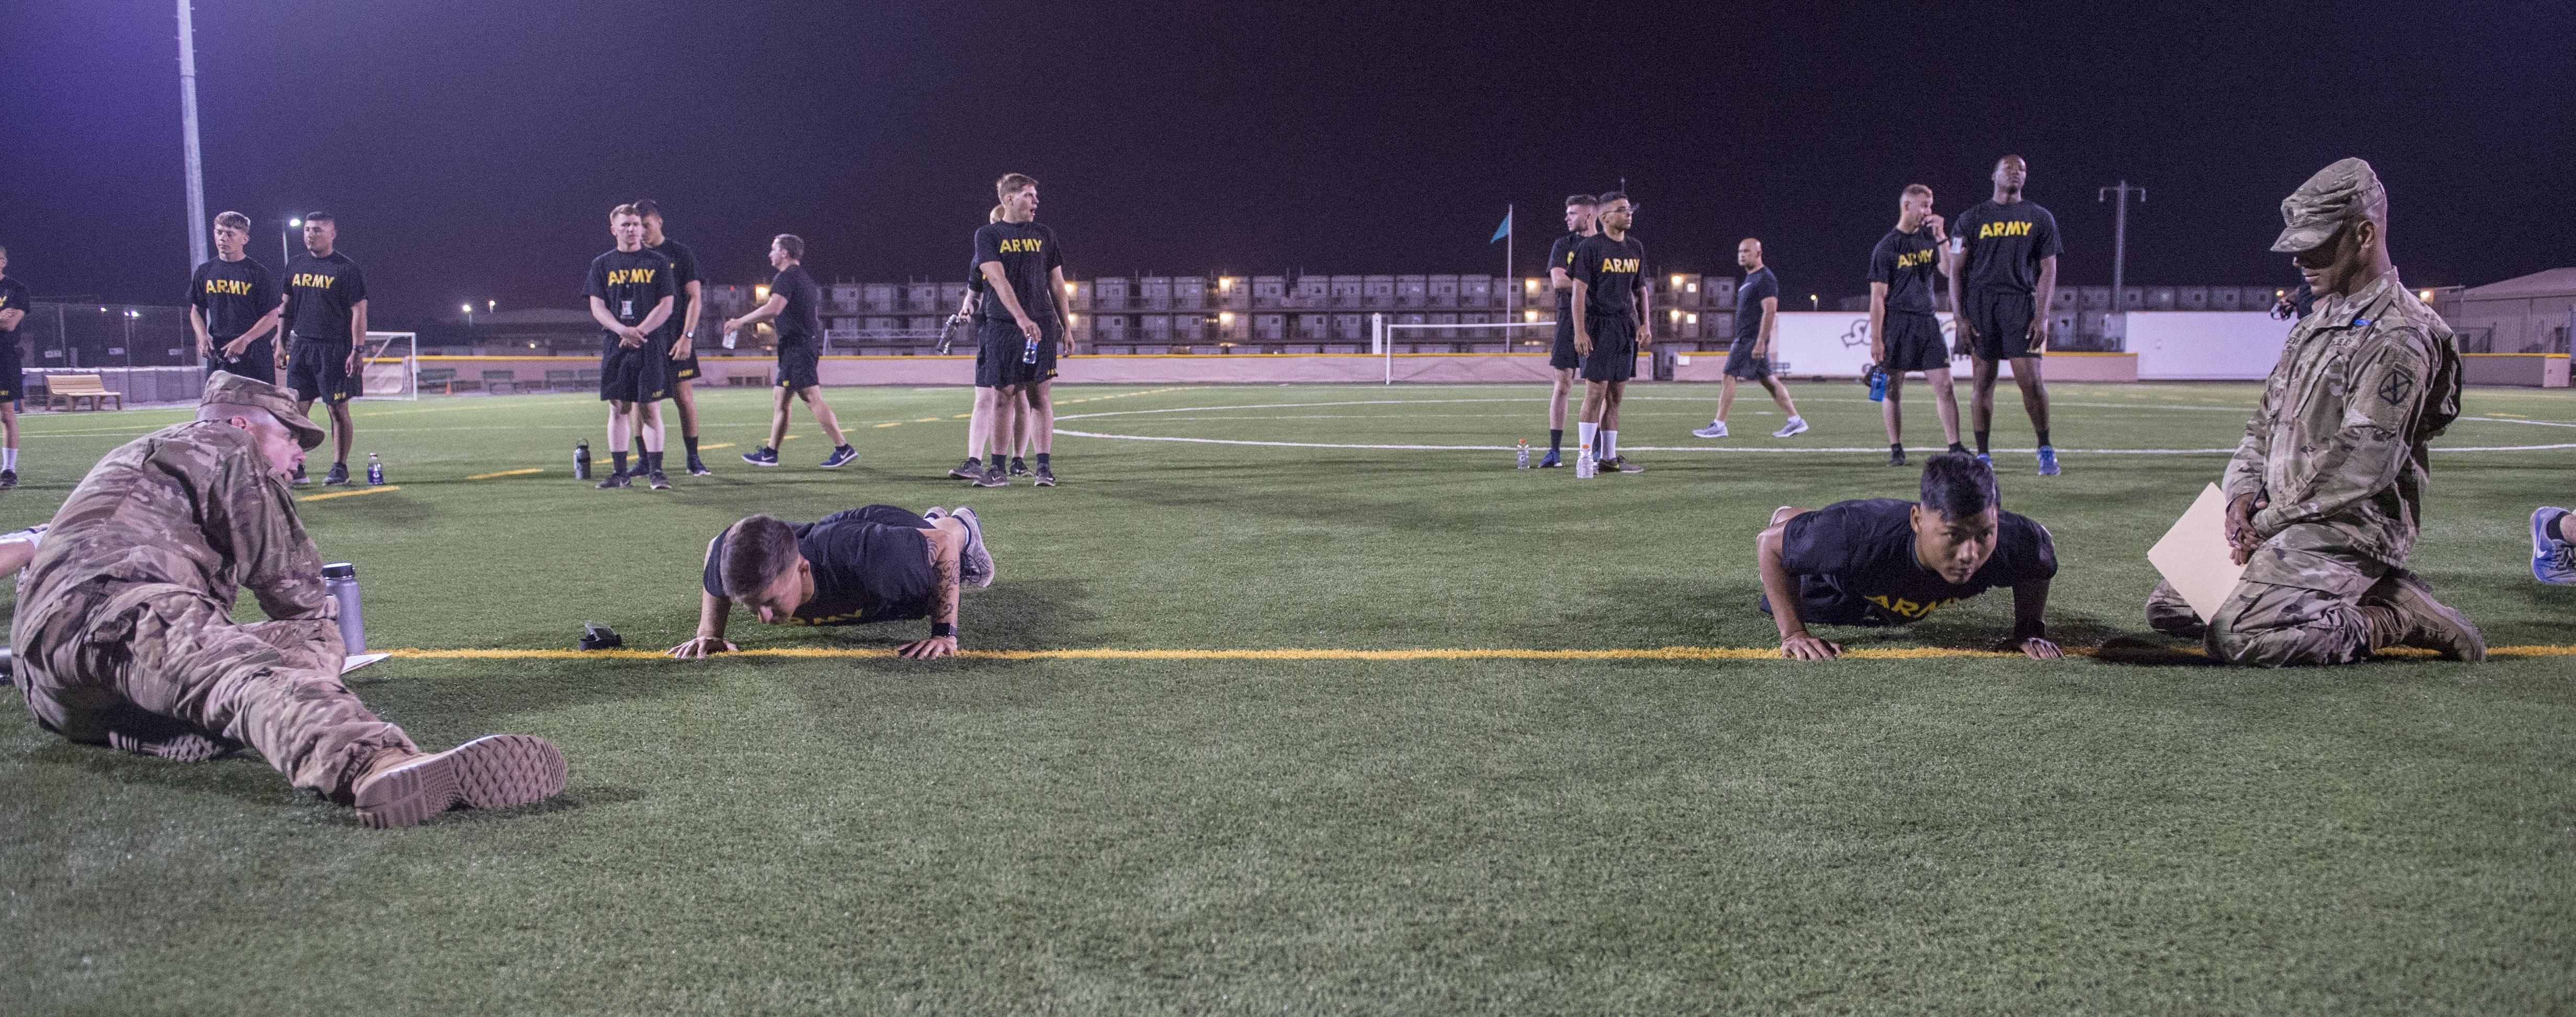 U.S. Army Soldiers assigned to Combined Joint Task Force - Horn of Africa perform pushups during the Army Physical Fitness Test portion of an Expert Infantryman Badge evaluation at Camp Lemonnier, Djibouti, Jan. 29, 2018. After two weeks of training and five days of testing, 50 Soldiers completed the process to earn the coveted special skills badge that requires Soldiers to perform an Army Physical Fitness Test, day and night land navigation, a 12-mile forced march, and 30 individual tasks covering weapons, medical, and security patrol skills. (U.S. Air Force photo by Staff Sgt. Timothy Moore)